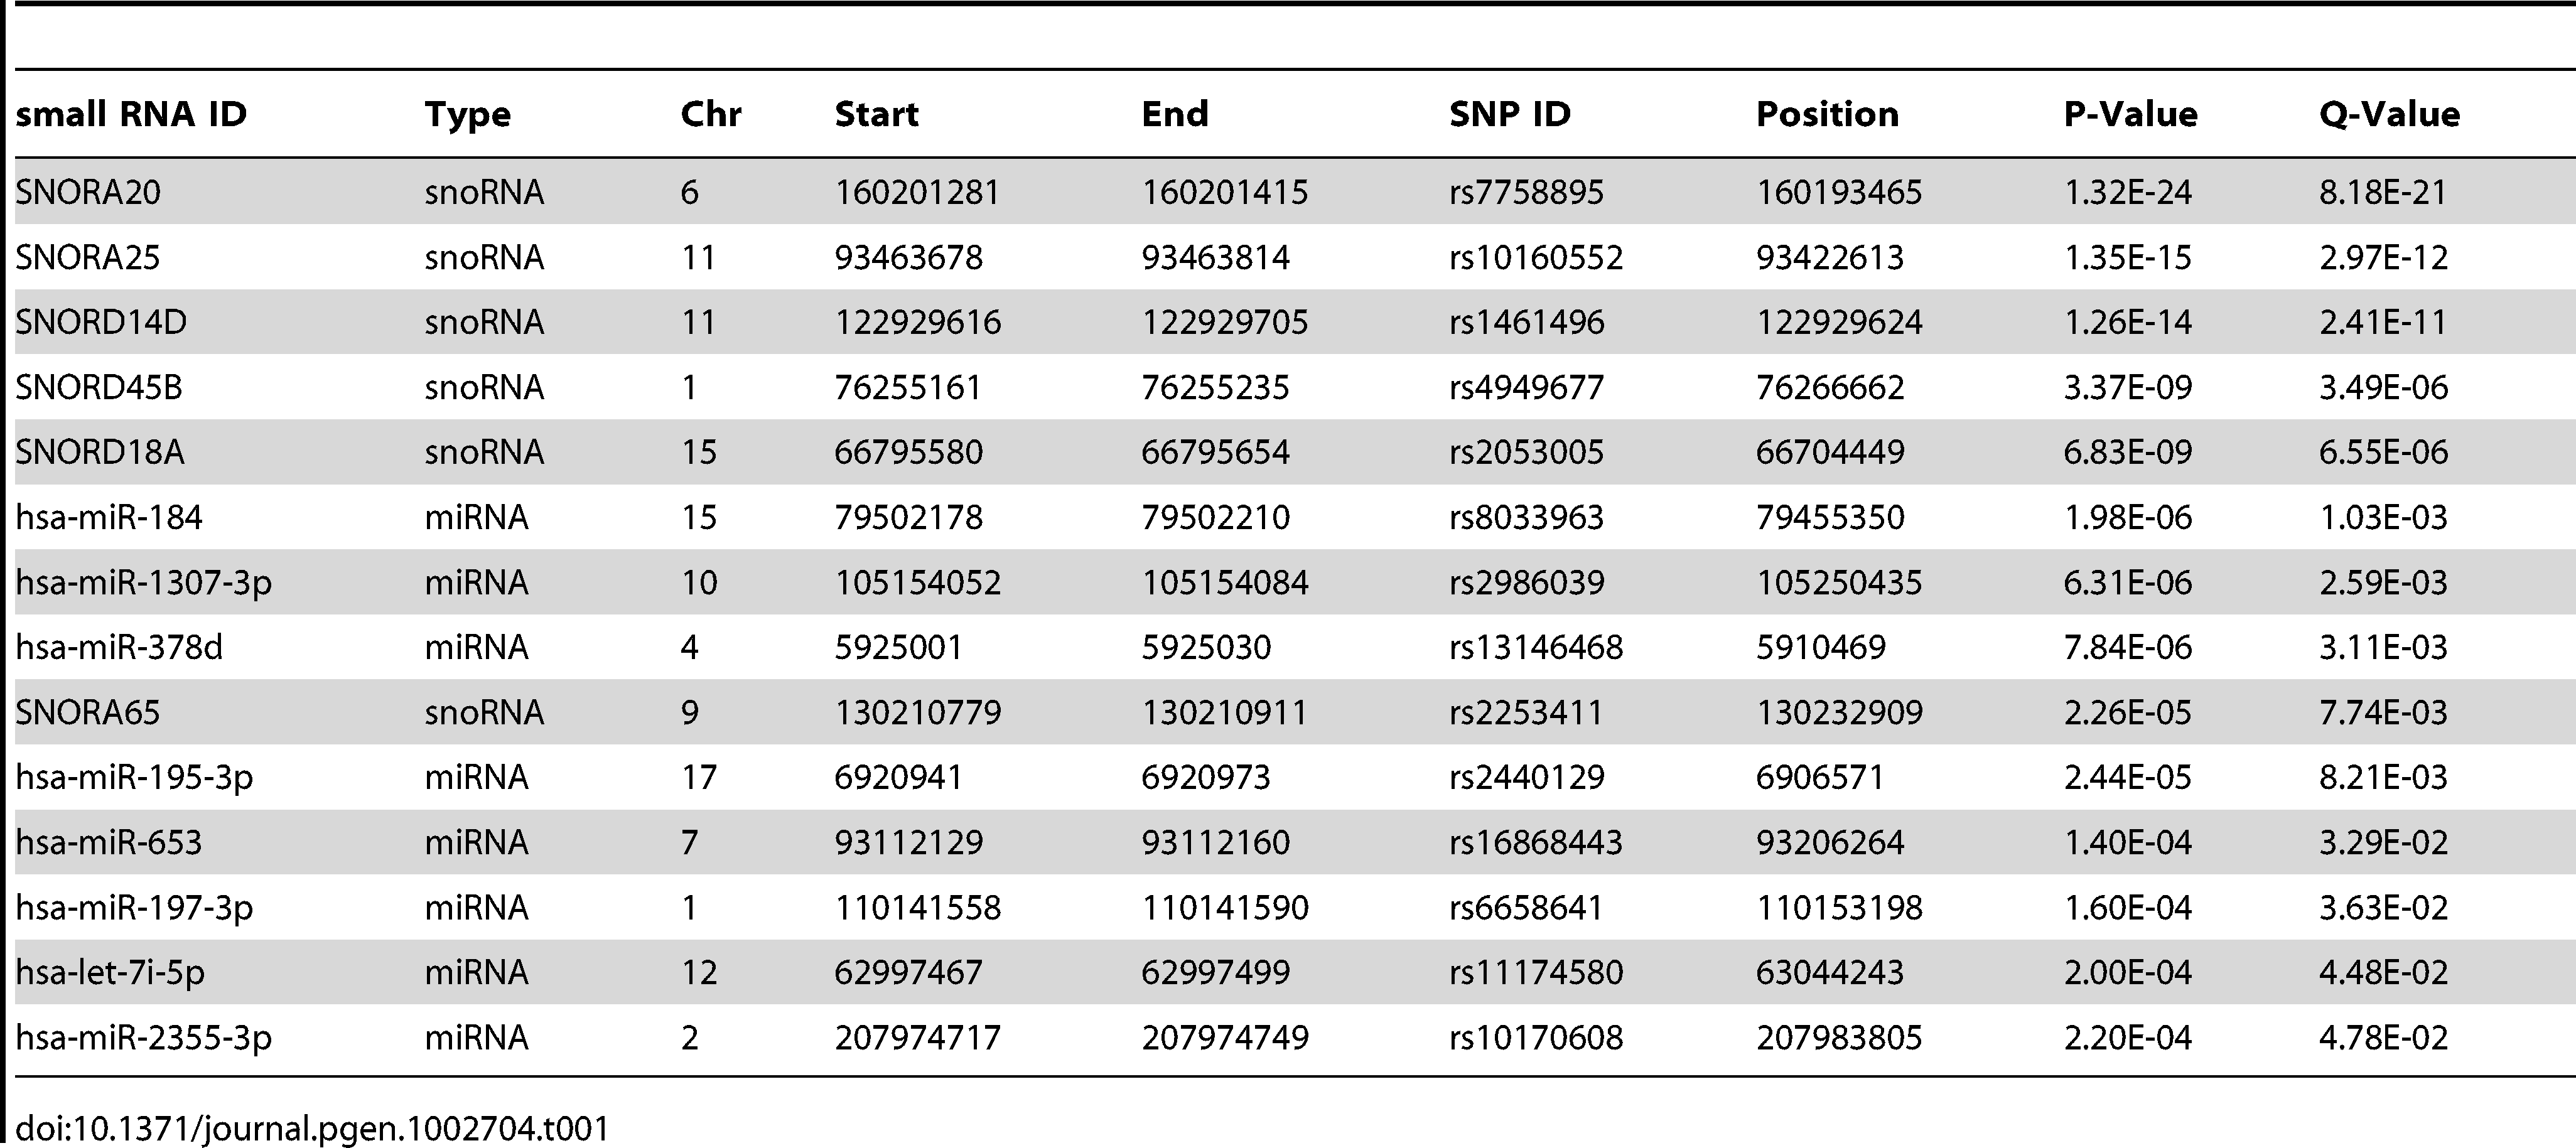 Small RNA <i>cis</i>-eQTLs - significant (nominal p<2.4×10<sup>−4</sup>, FDR<5%) associations of miRNA and snoRNA expression levels to SNPs within 100 kb from the transcript.